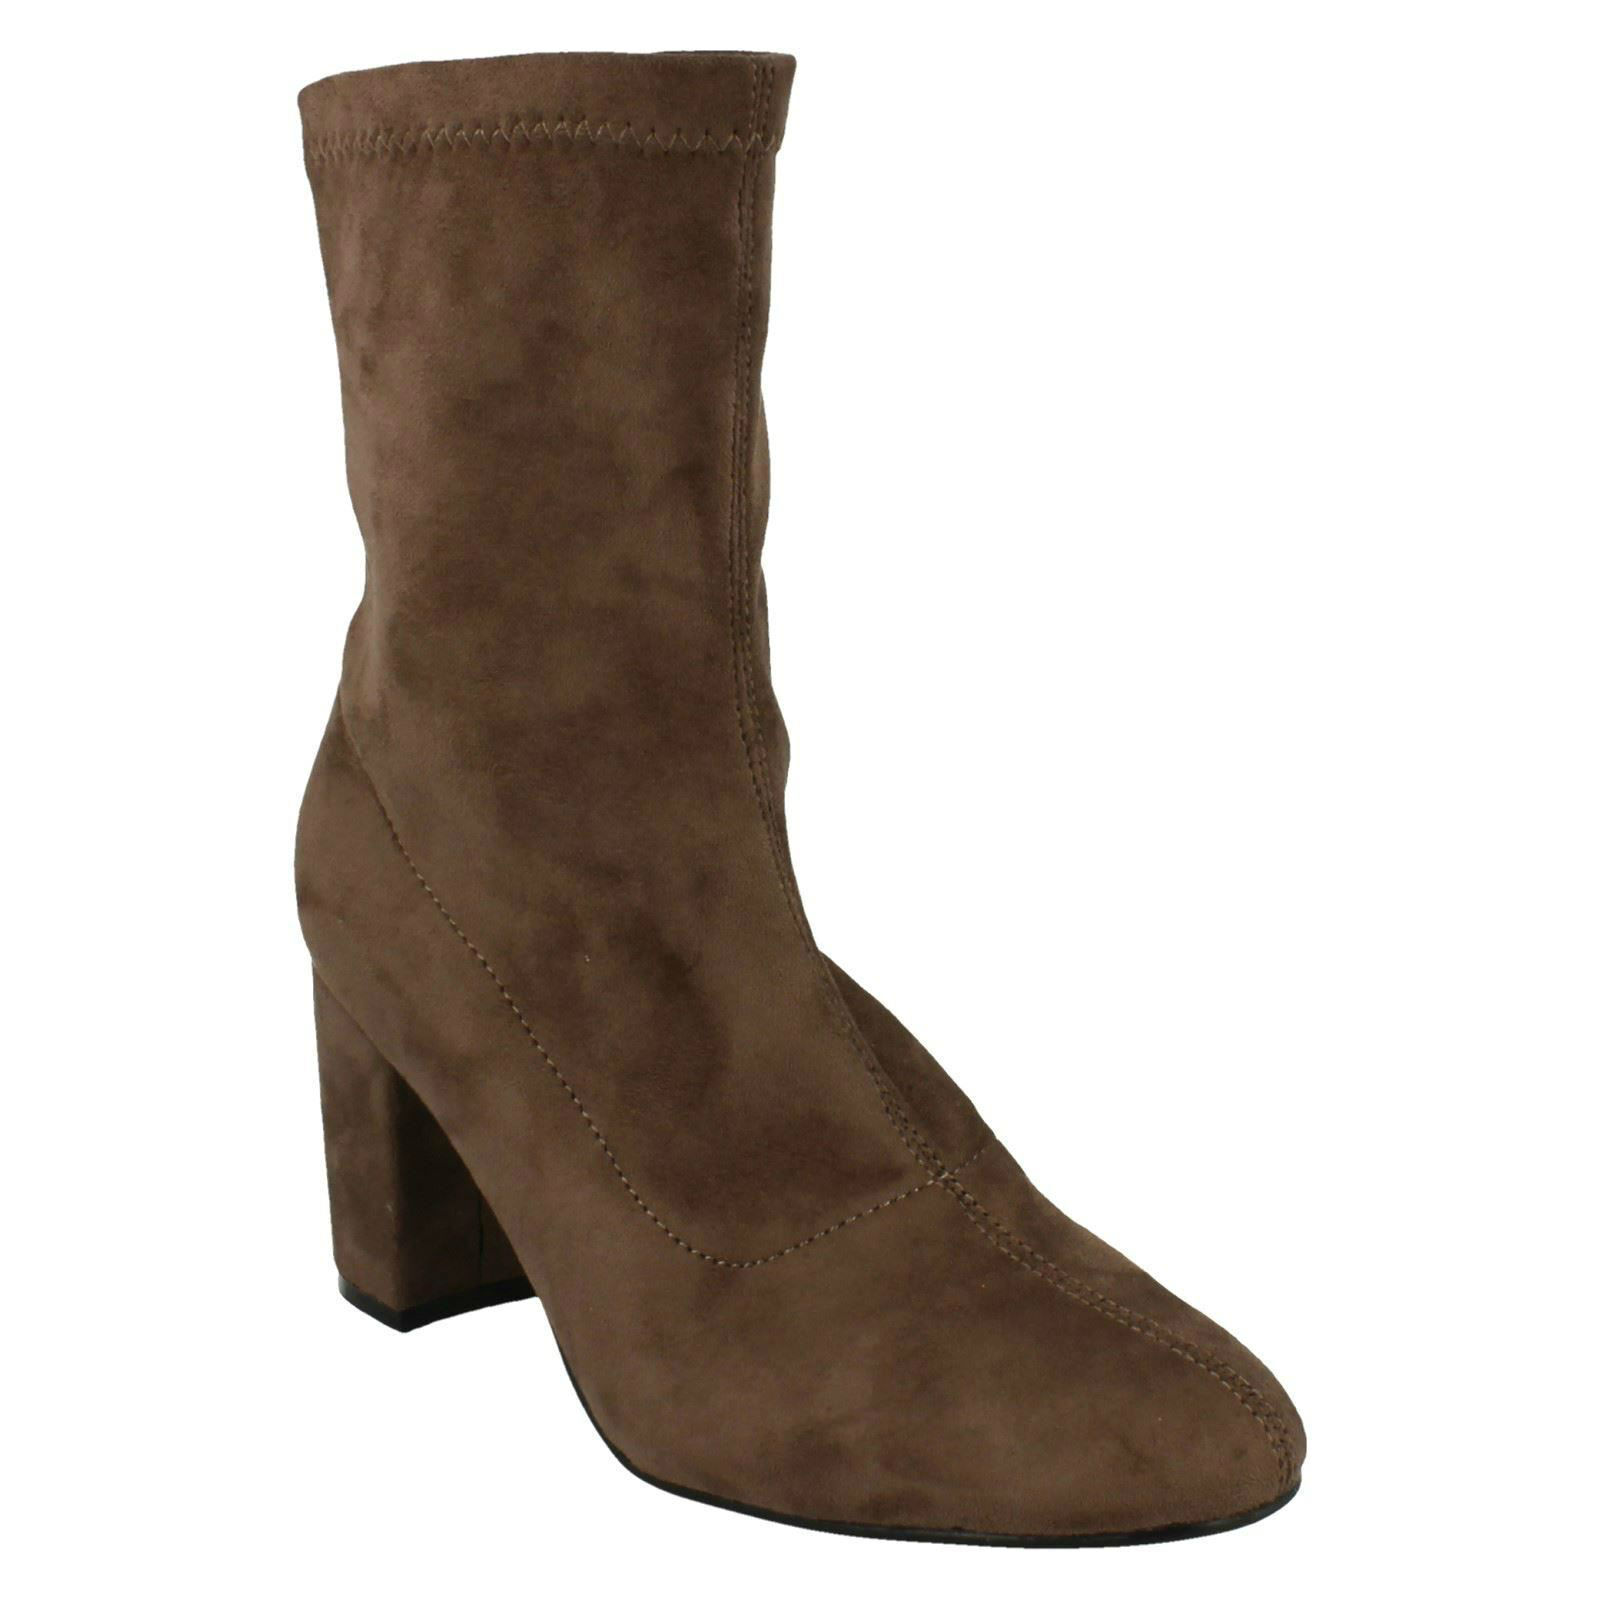 LADIES WOMENS ANNE MICHELLE PULL ON CASUAL HEELED ANKLE HIGH BOOTS F50681 SIZE